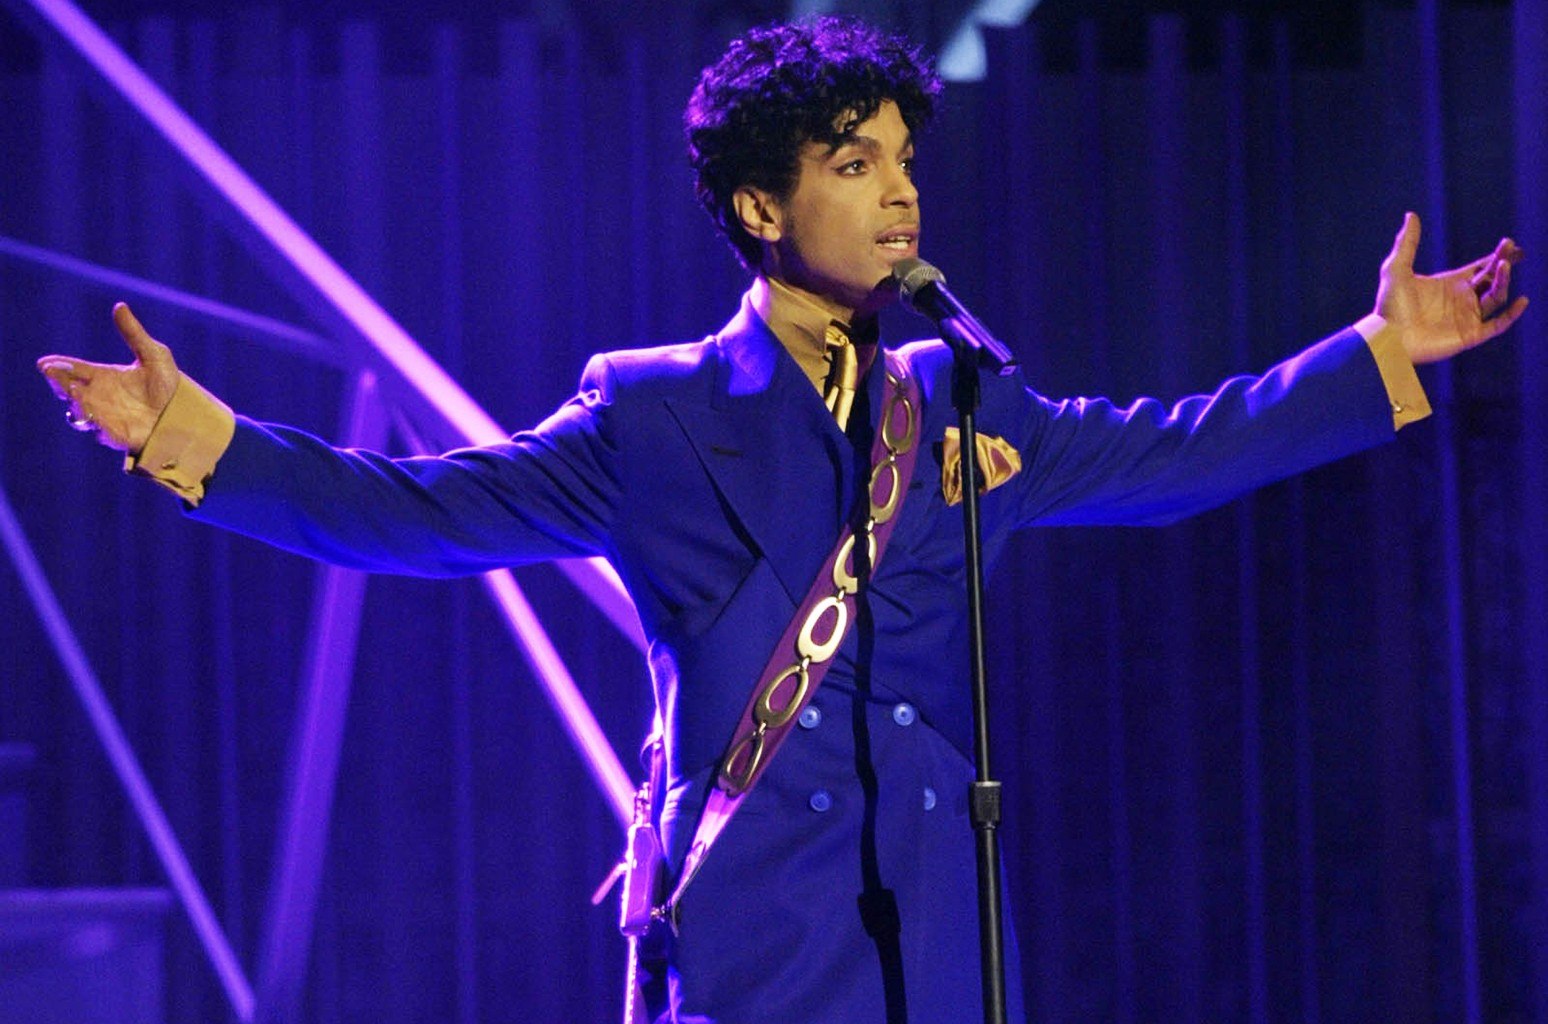 Prince performs during the 46th Annual Grammy Awards